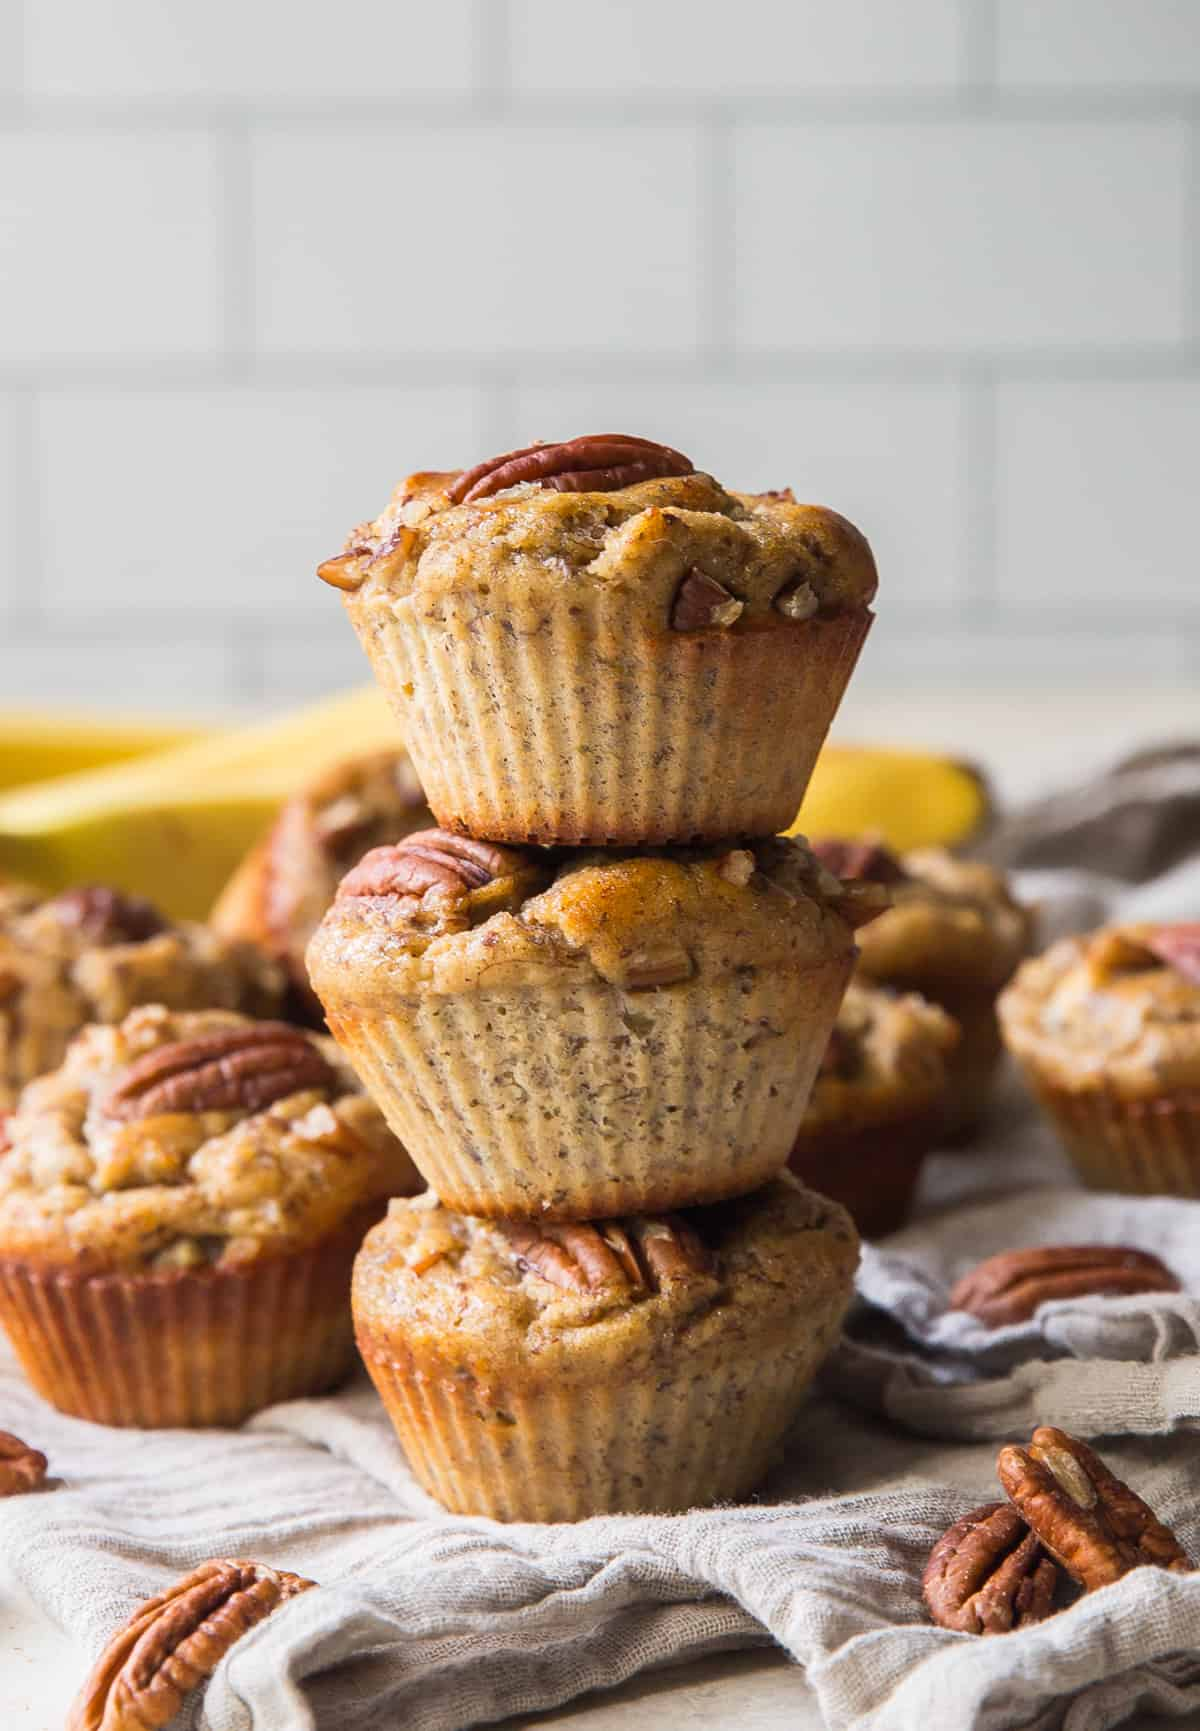 A stack of three Banana Pecan Protein Muffins.